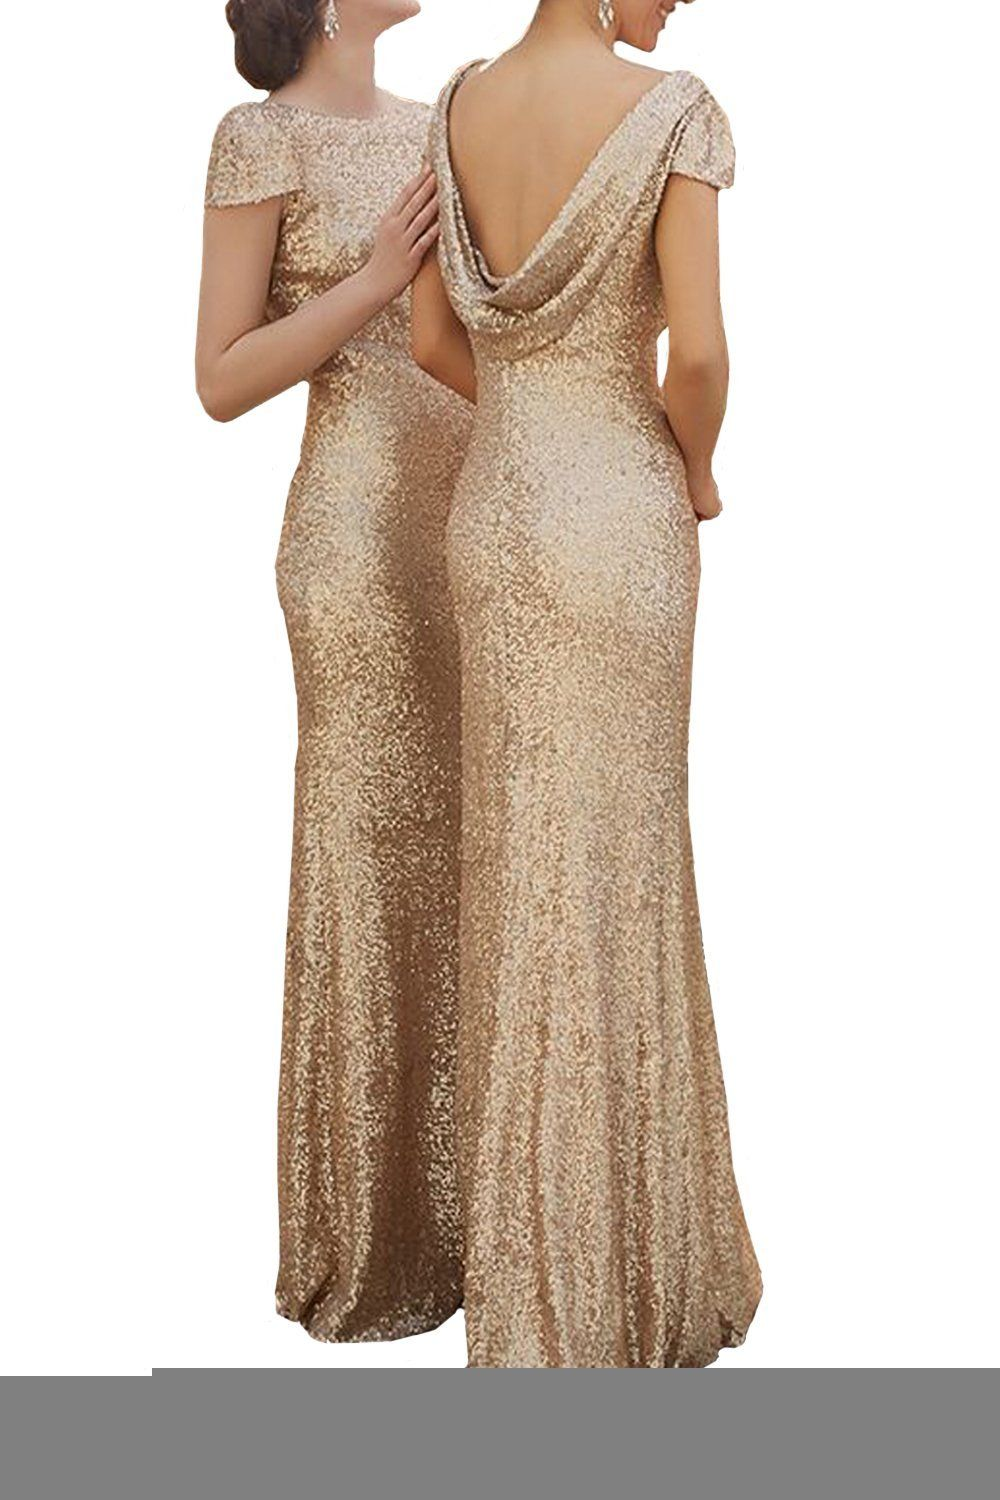 218e2e7a8ee Sparkle Rose Gold Sequins Bridesmaid Dresses Modest Long Prom Evening Gowns   Amazon Fashion